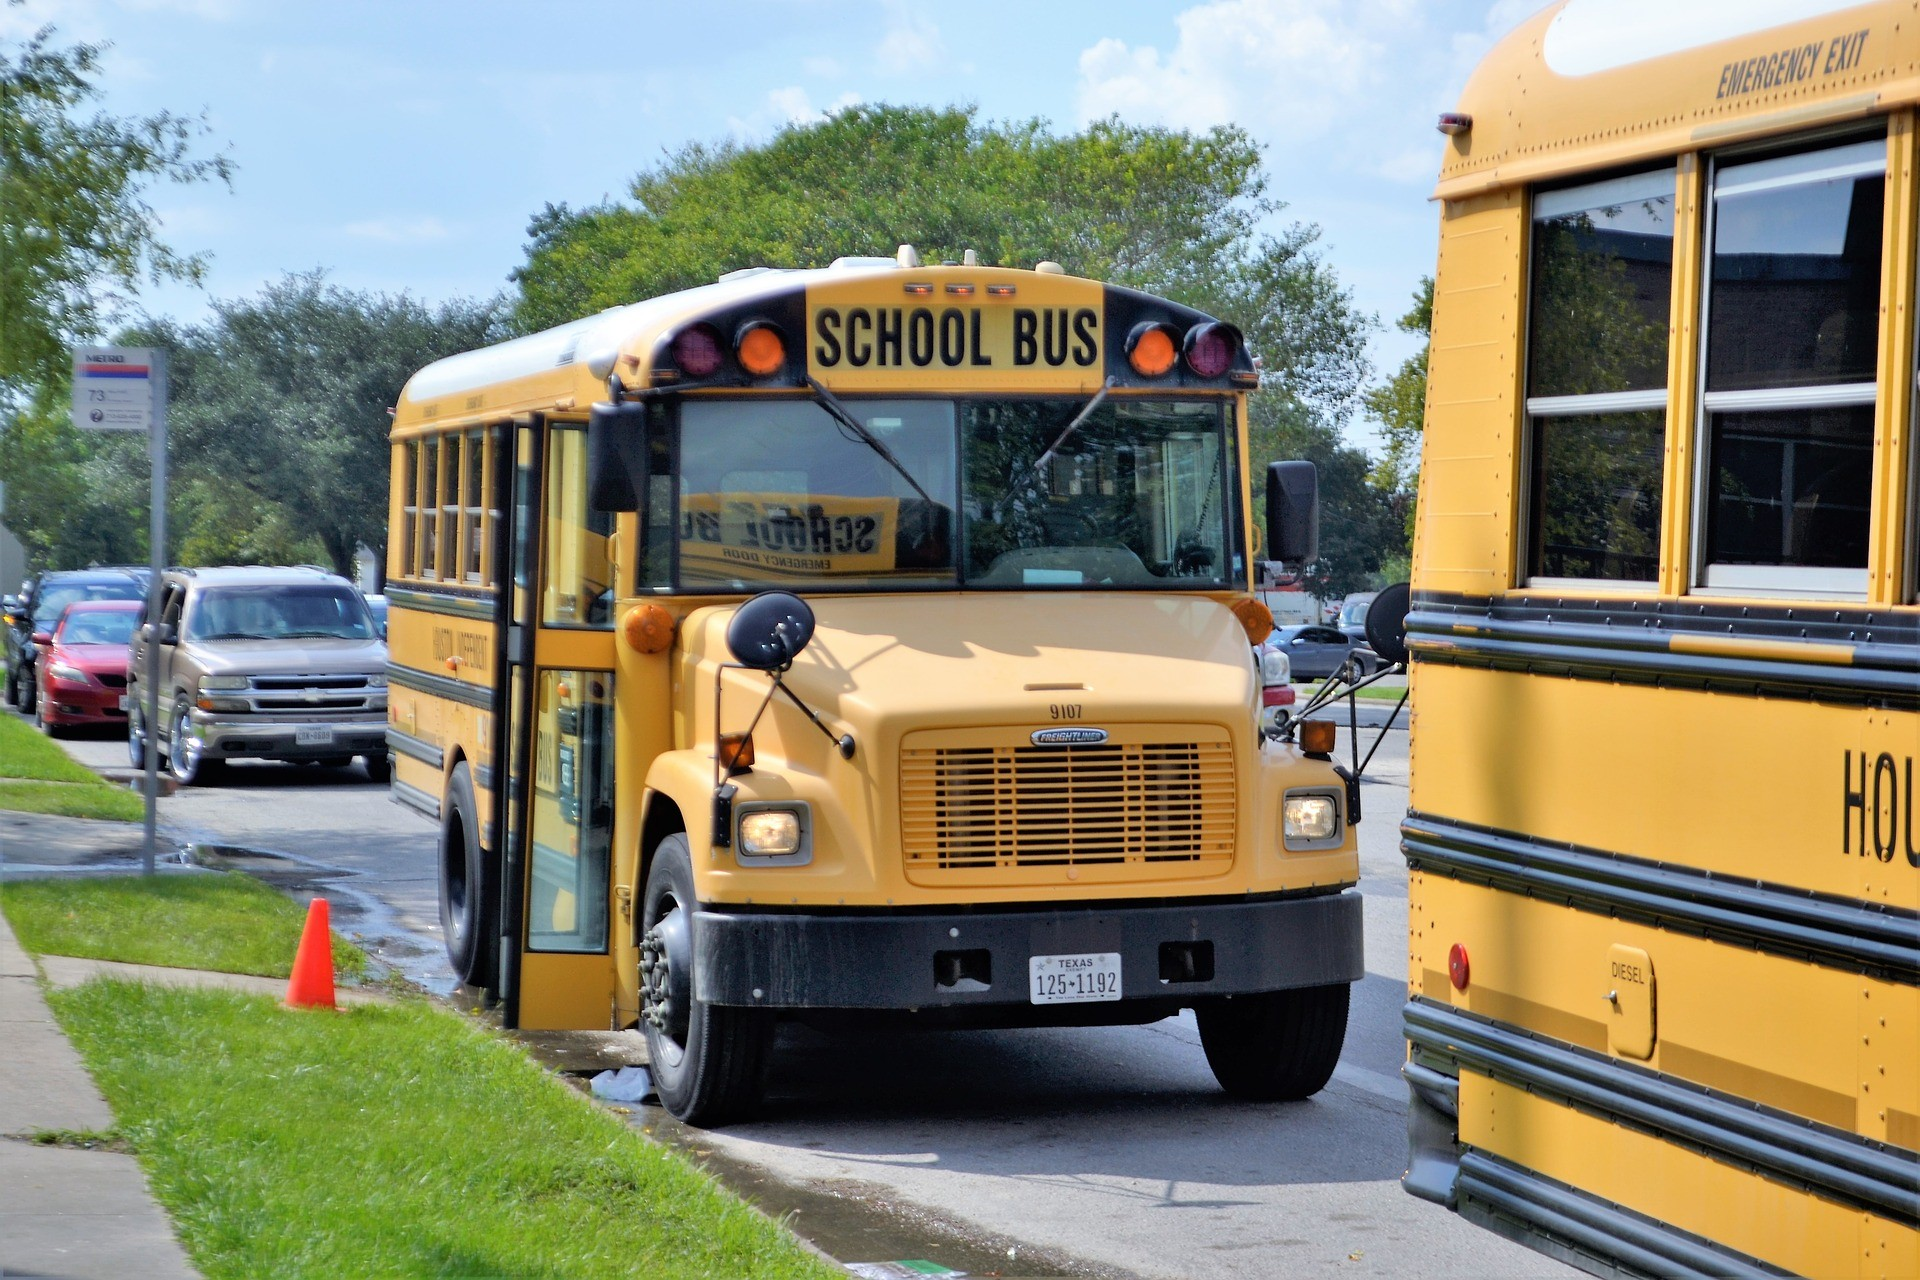 school busses on the bus stop